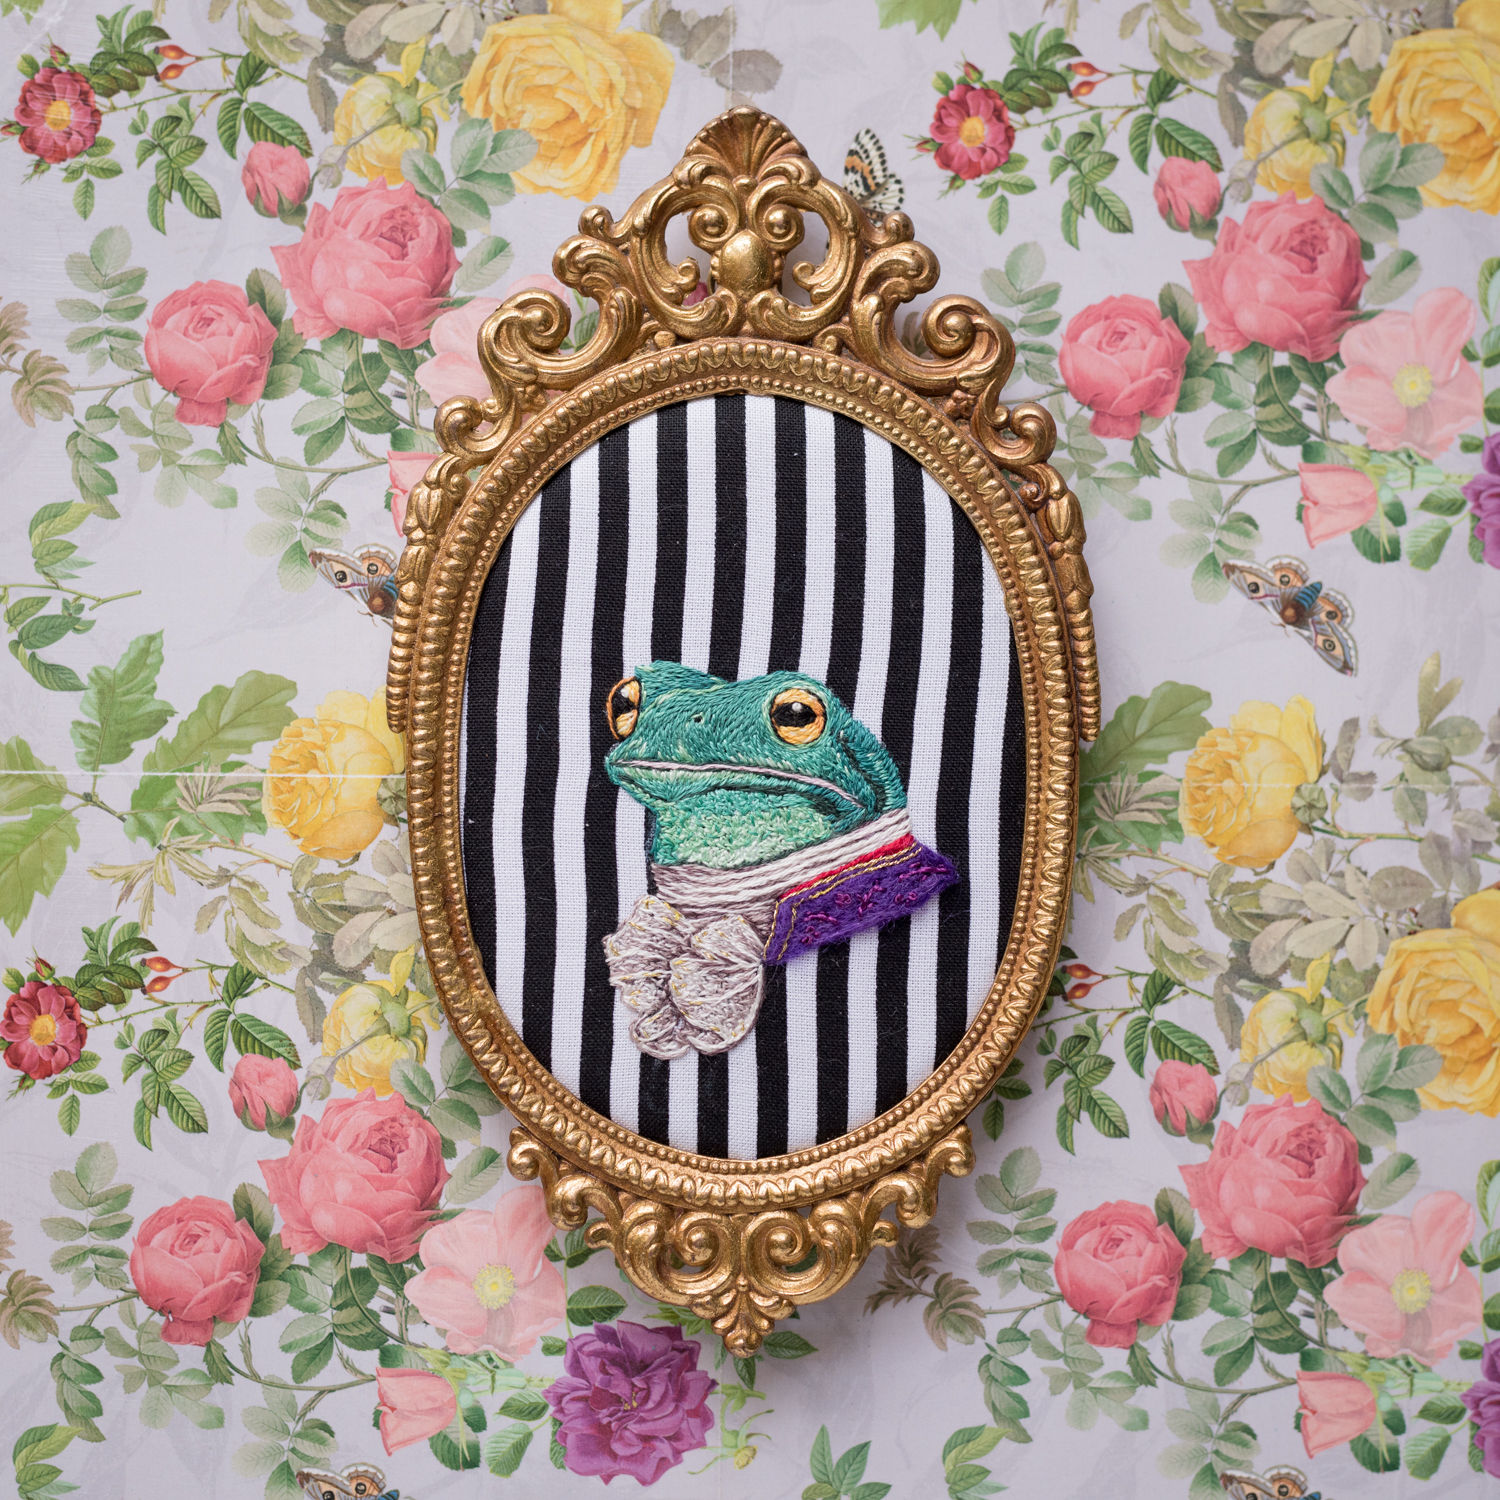 Embroidered Portrait of Frog dress in Victorian clothes within a gold frame